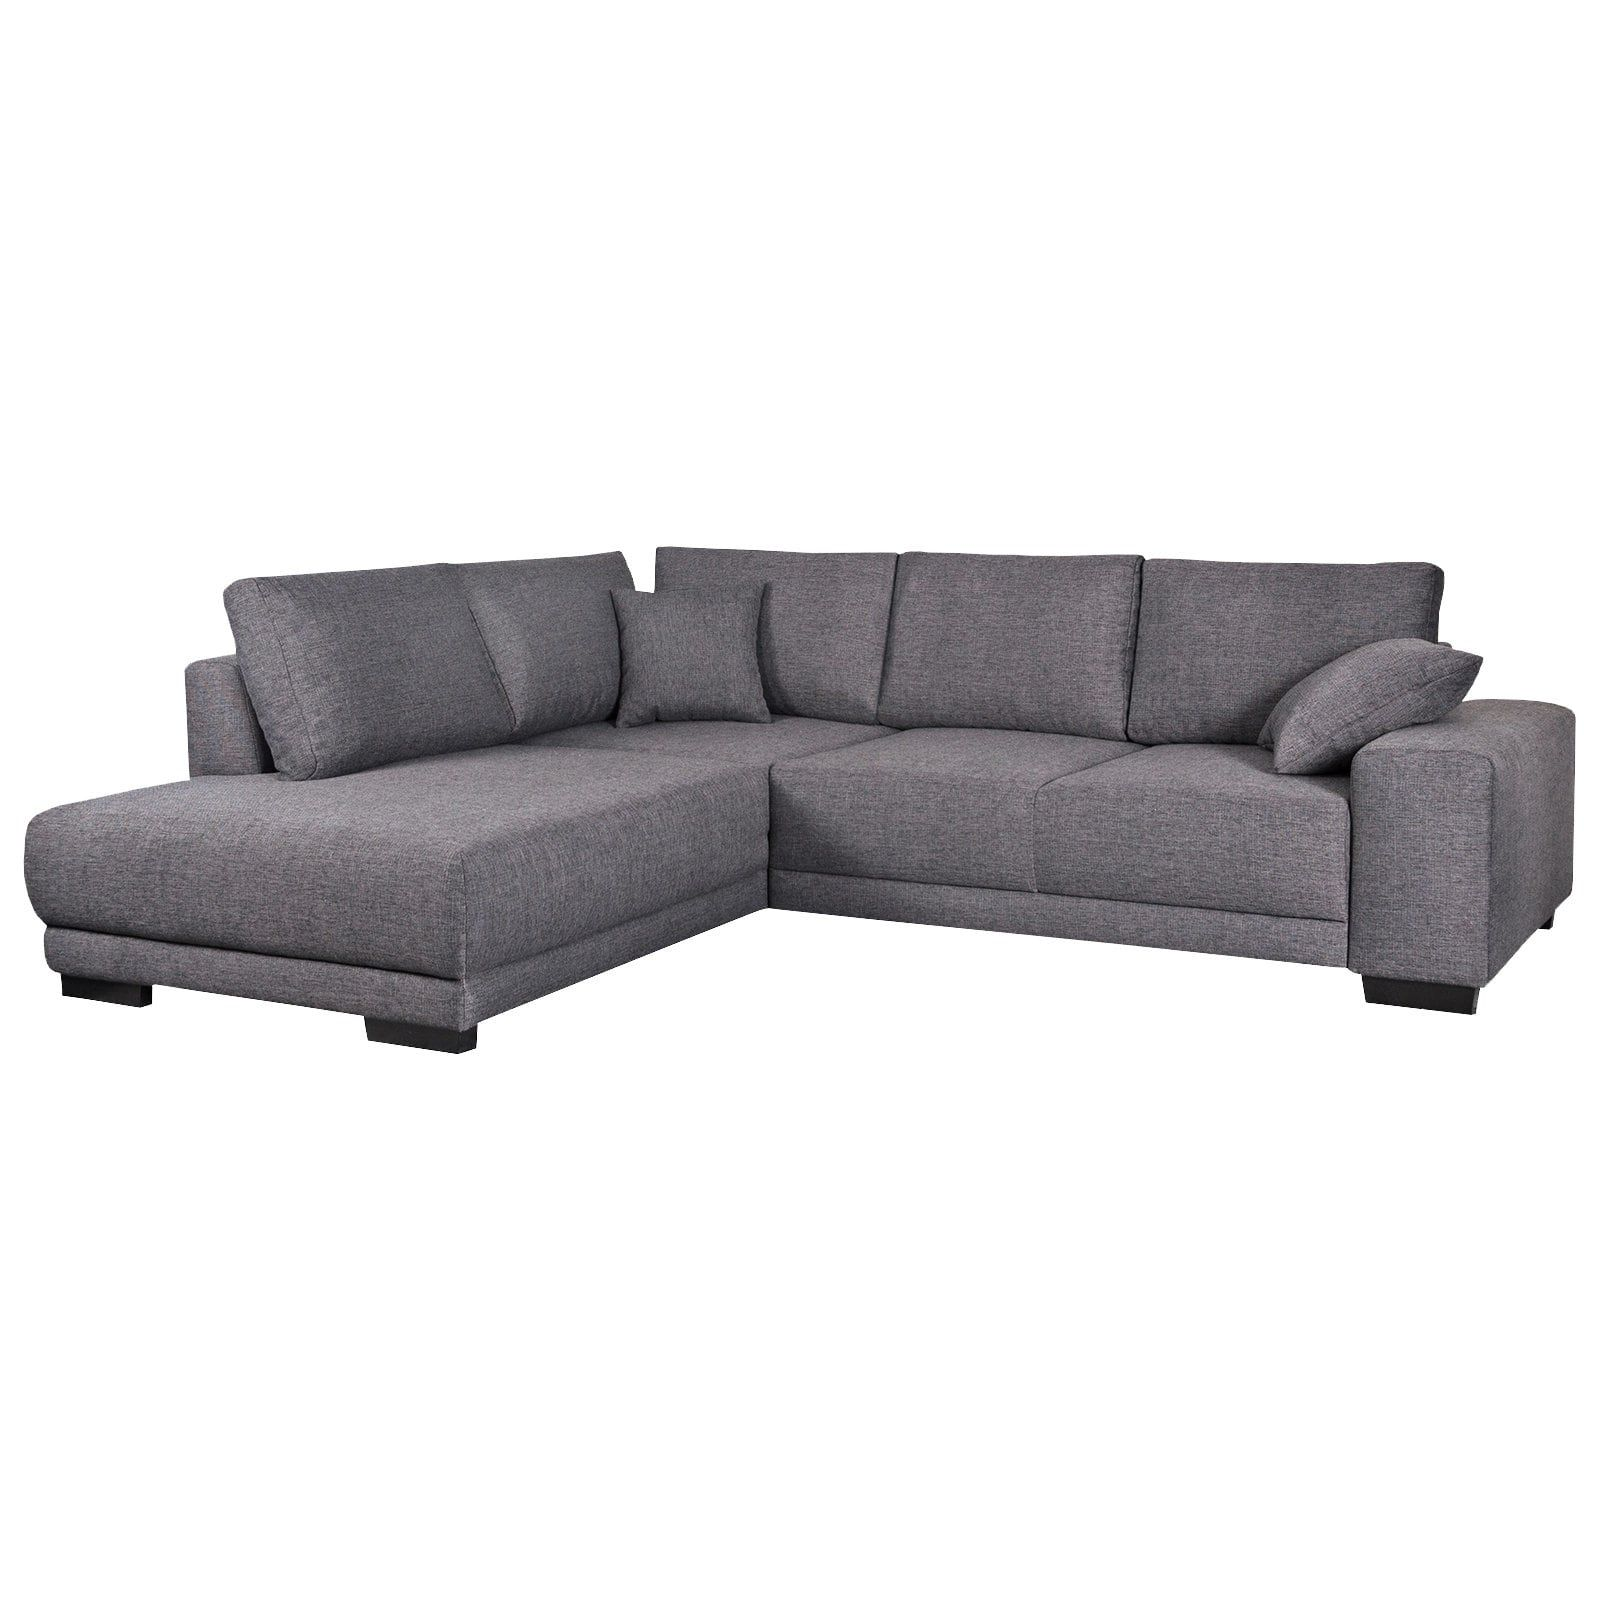 Ecksofas Outlet Ecksofa Paradine Box Grau Ourlivingroom Couch Furniture